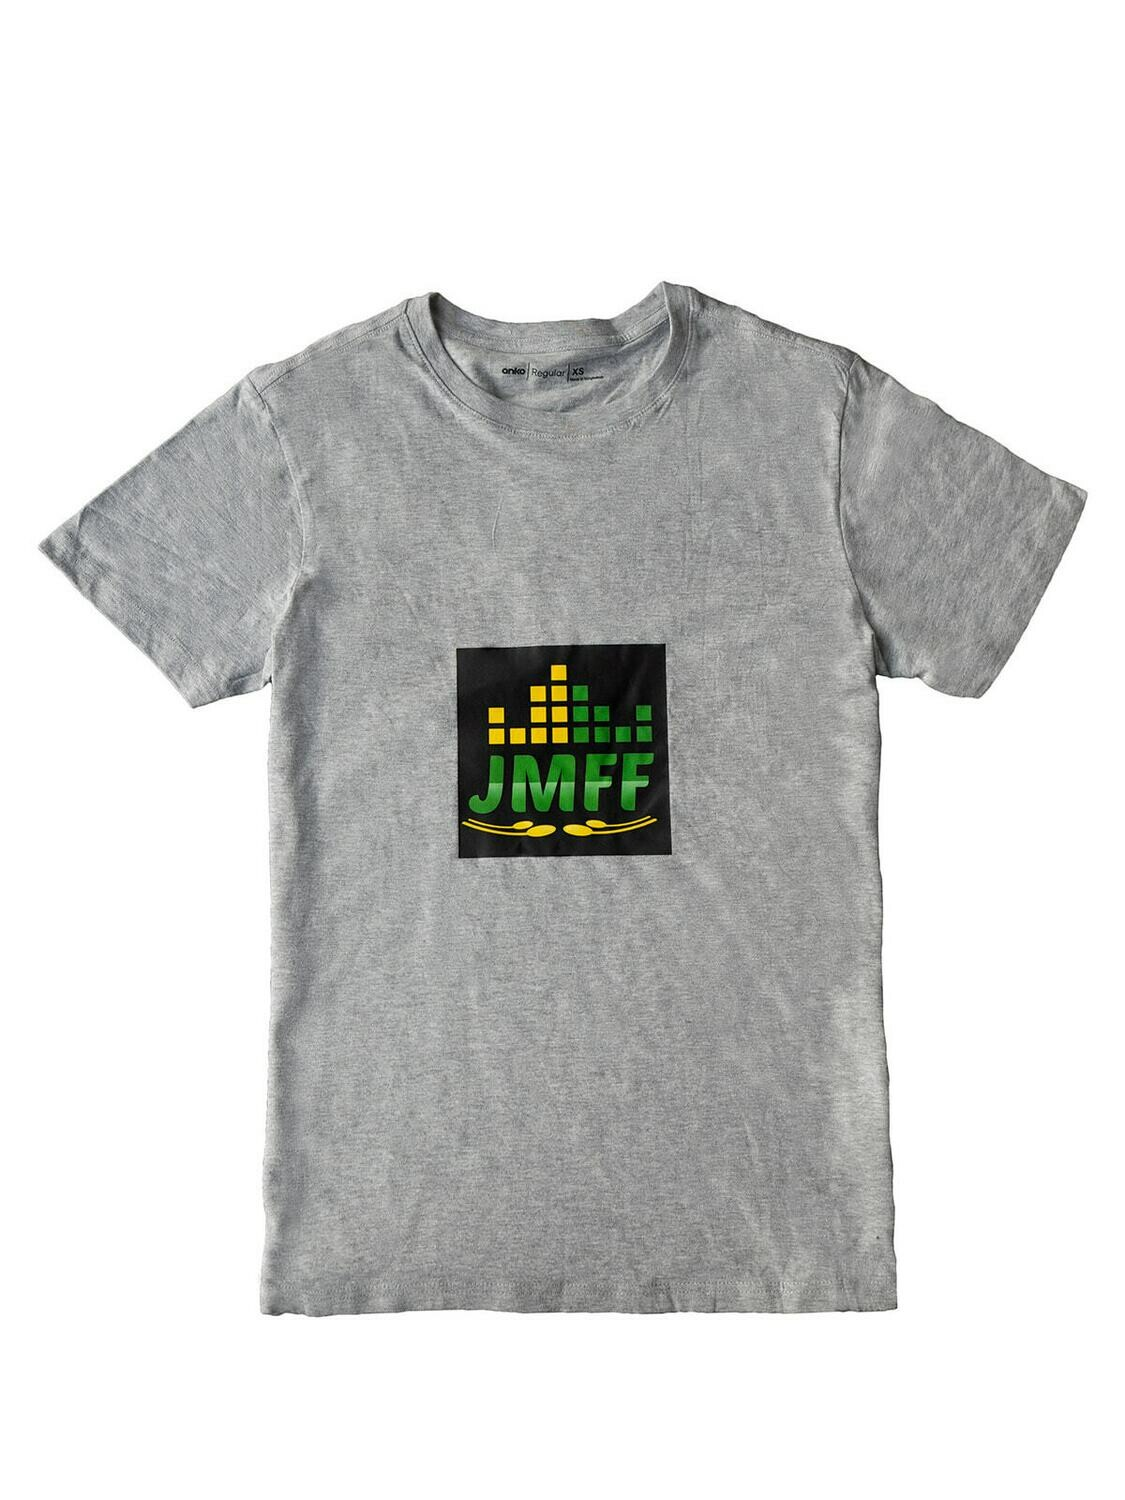 Children's JMFF T-Shirt (Round Neck) -International Shipping ONLY